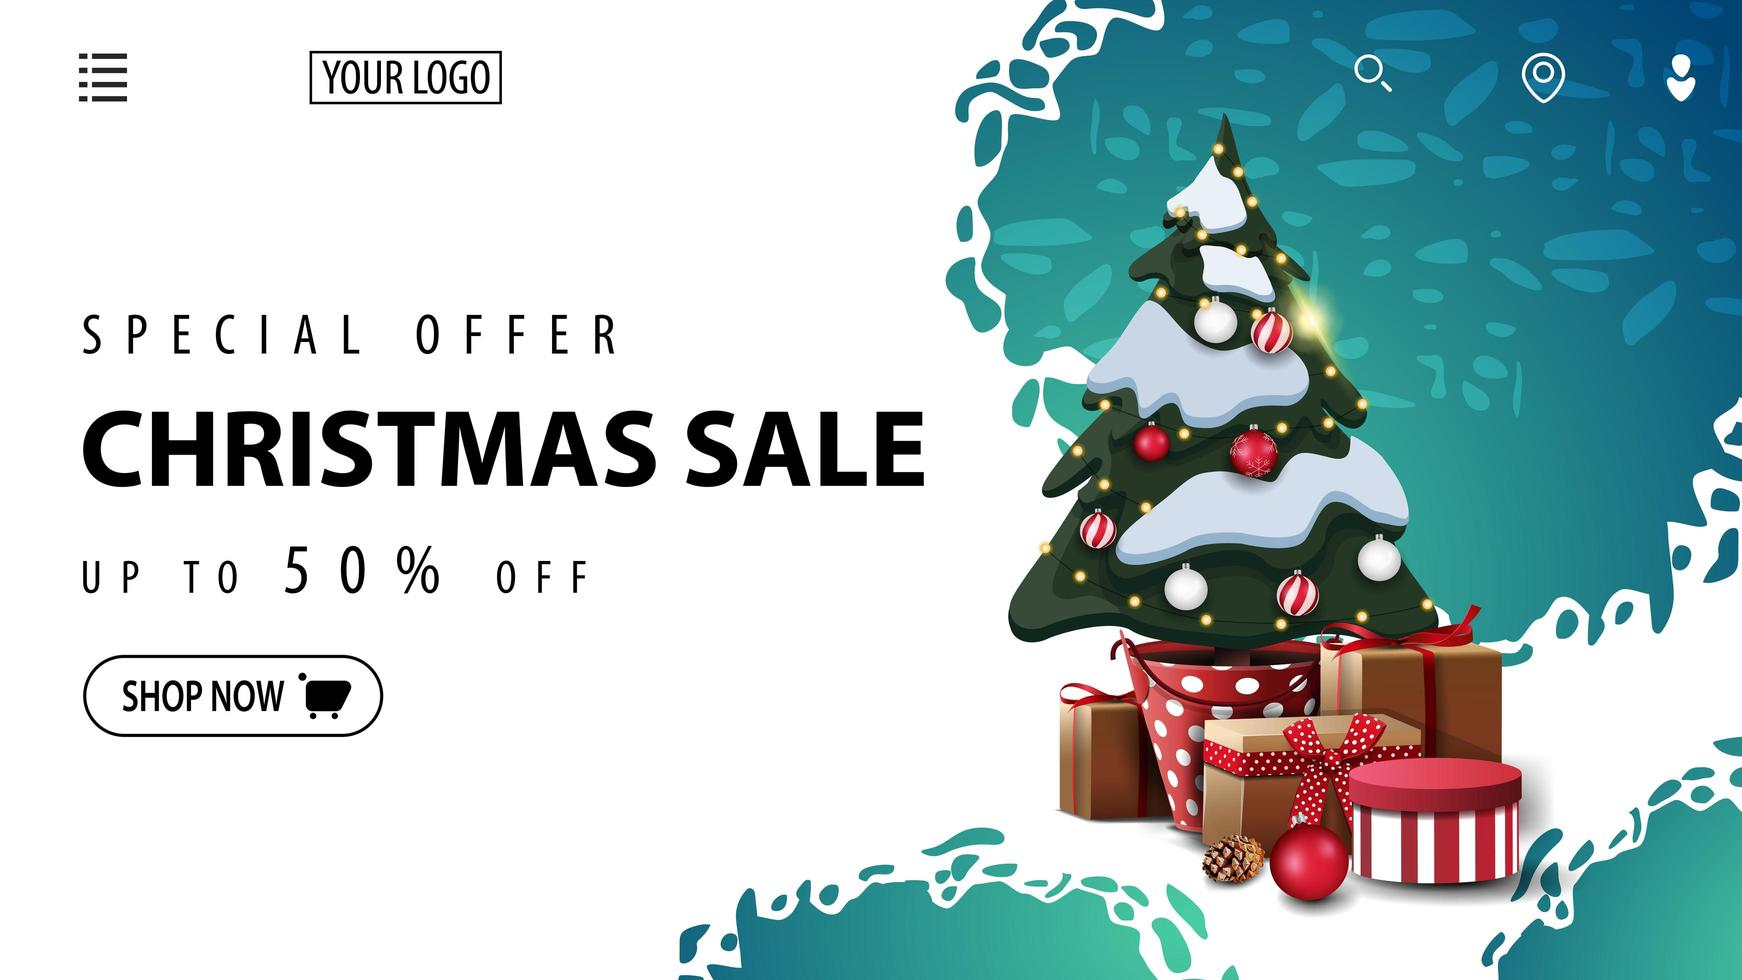 Christmas discount banner for website with abstract shapes vector